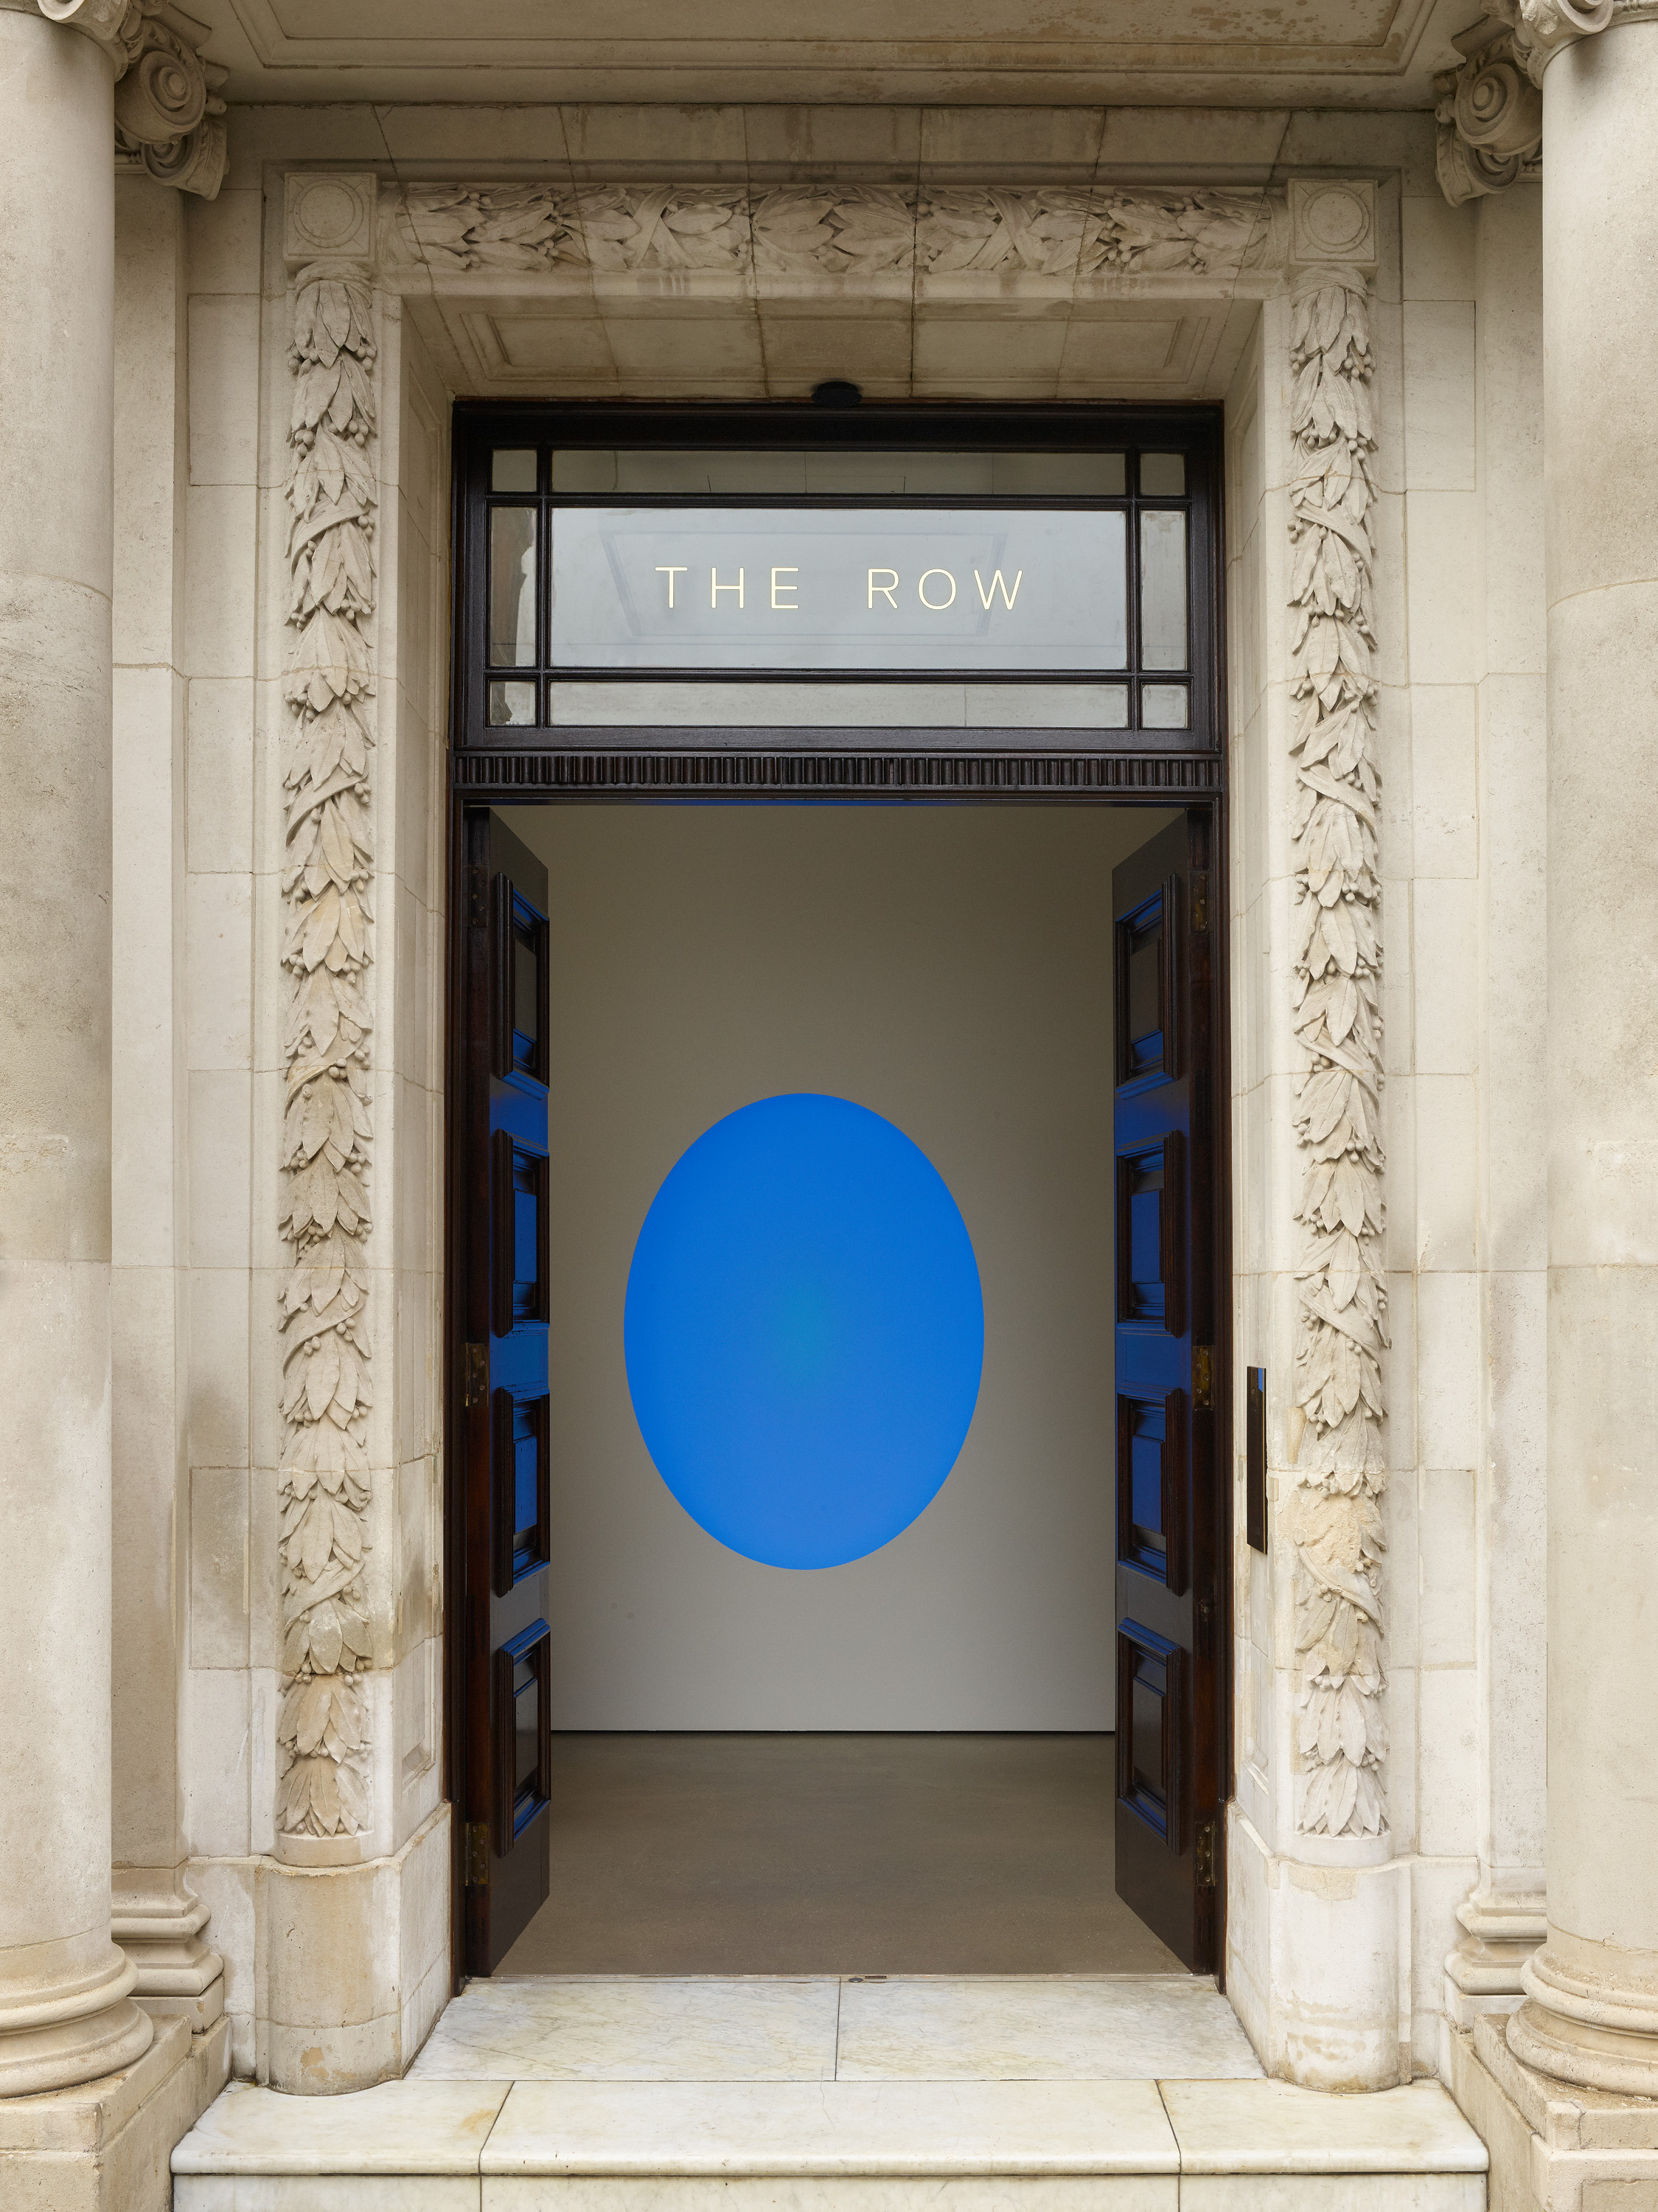 The Row, Carlos Place, James Turrell